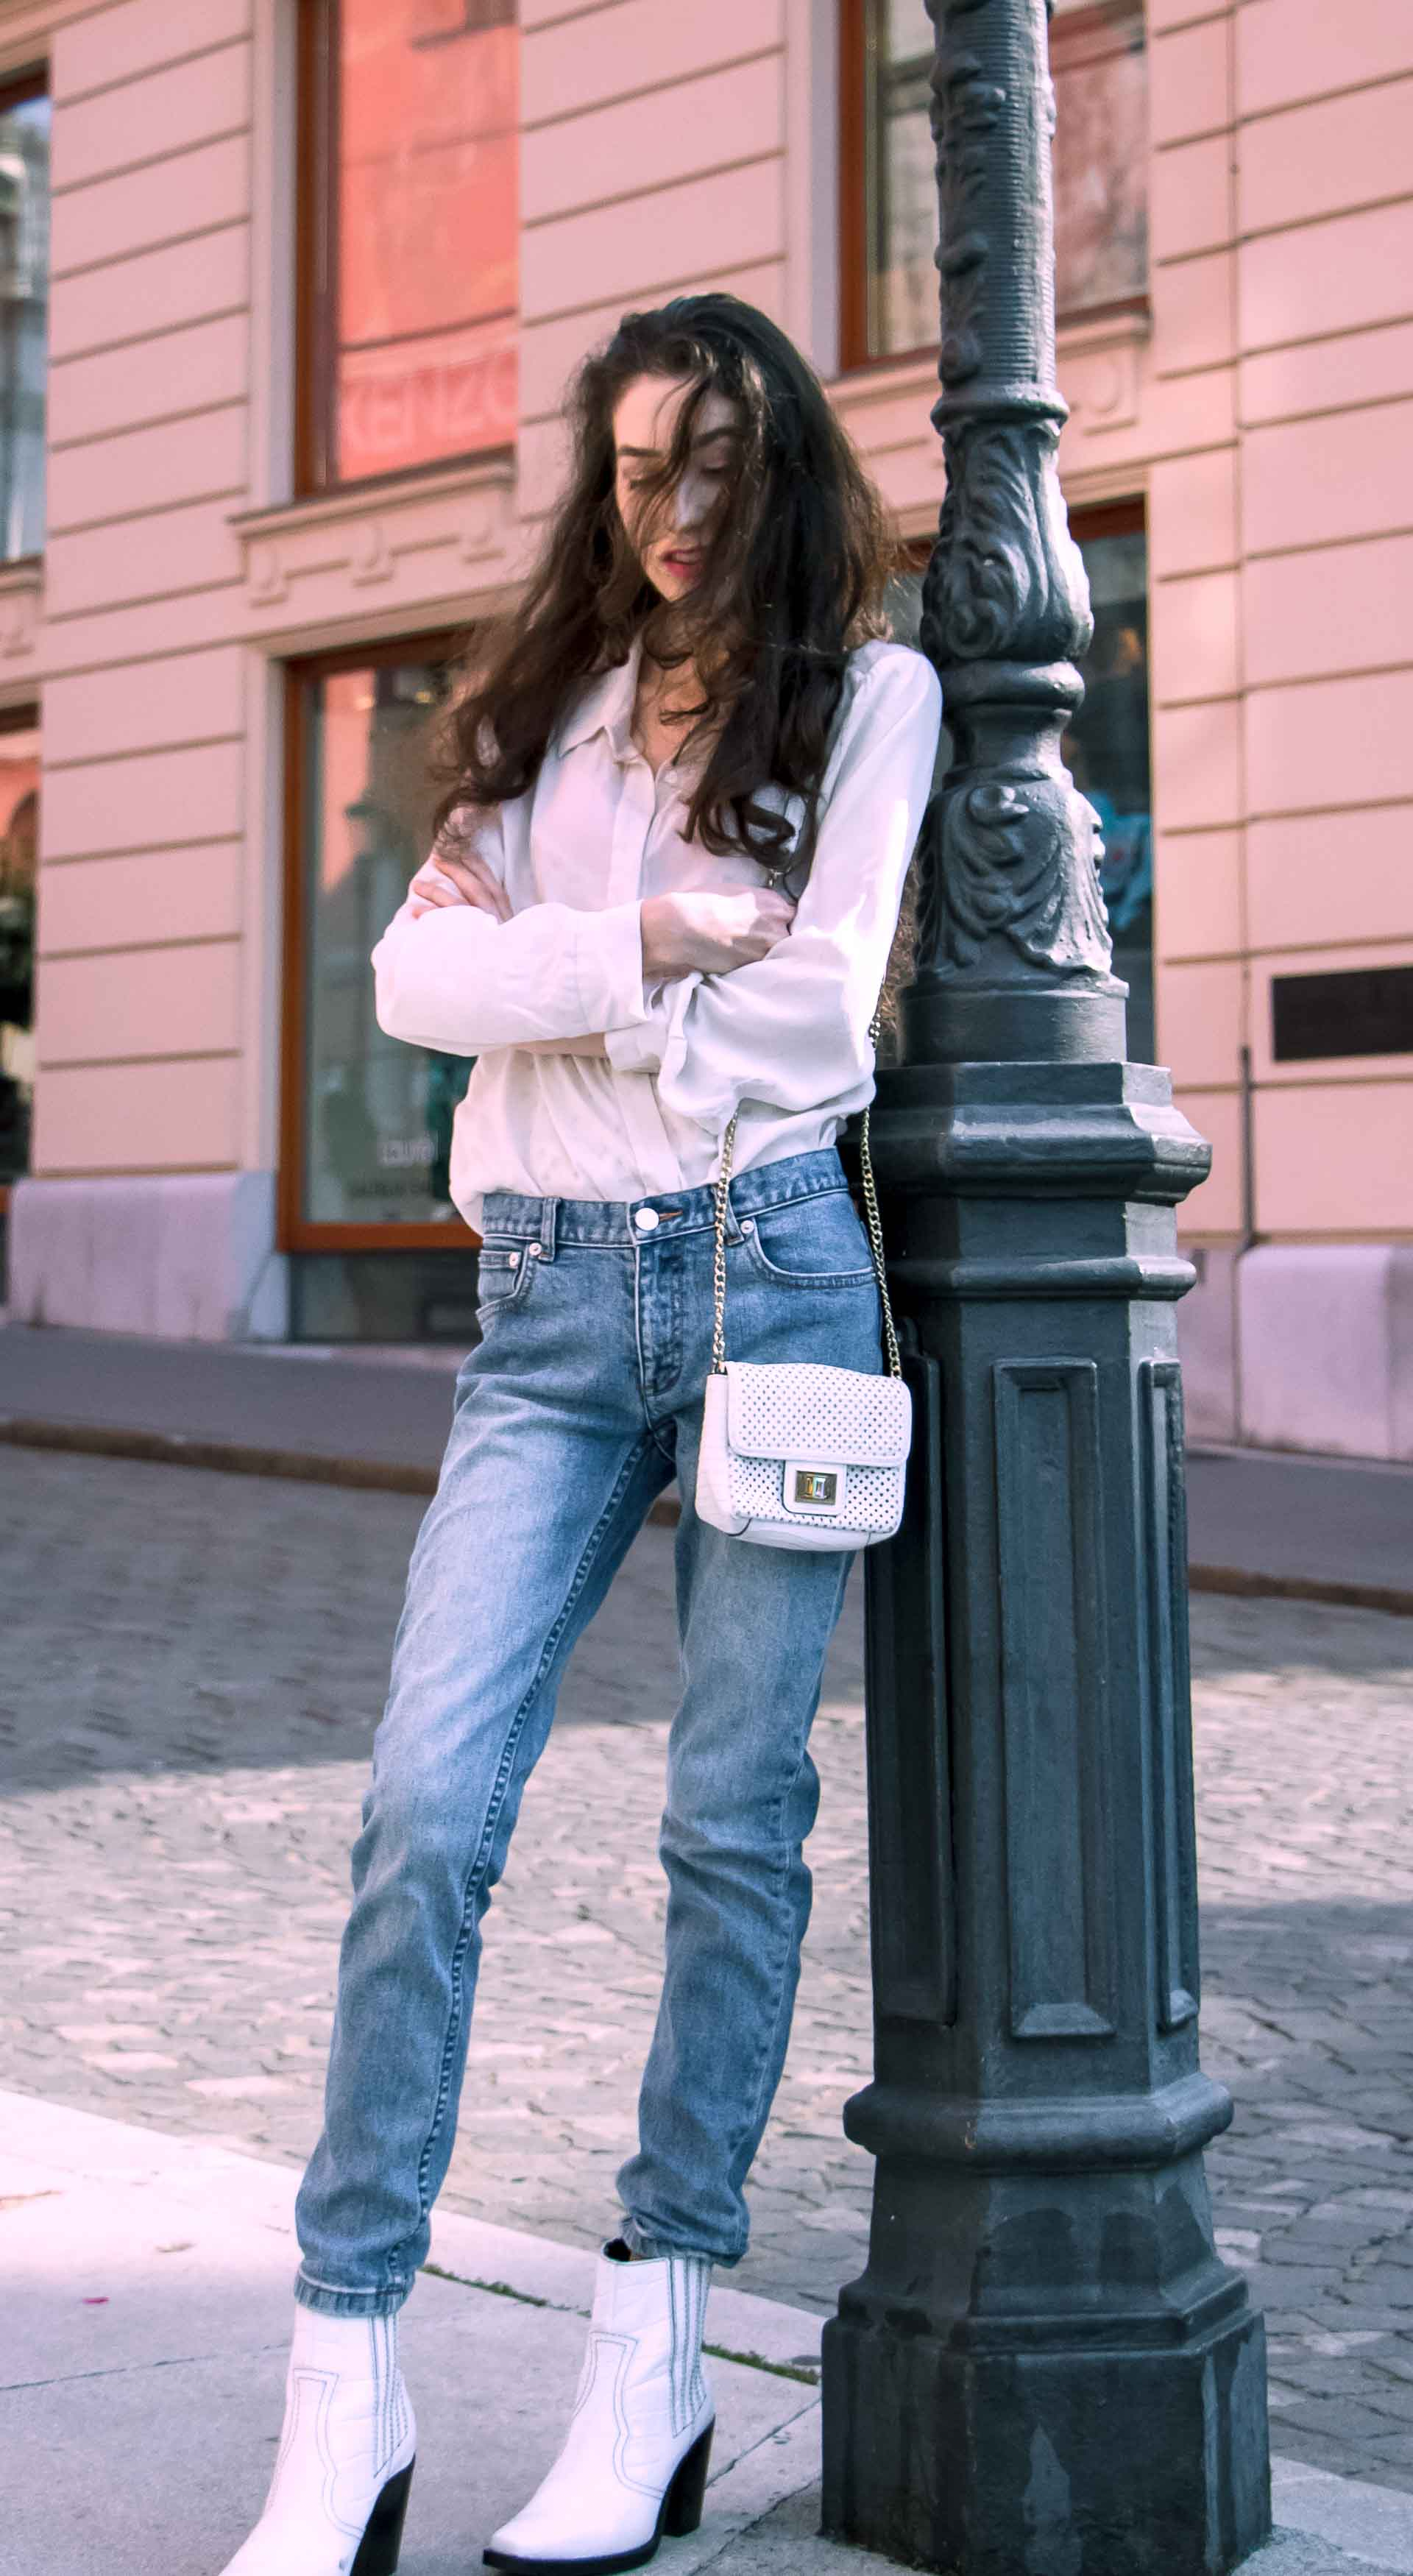 Beautiful Slovenian Fashion Blogger Veronika Lipar of Brunette from Wall wearing white silk shirt from Sandro Paris, white and black polka dot cami slip top, A.P.C. light blue jeans, white Ganni Western boots, chain strap shoulder bag leaning on the street lamp